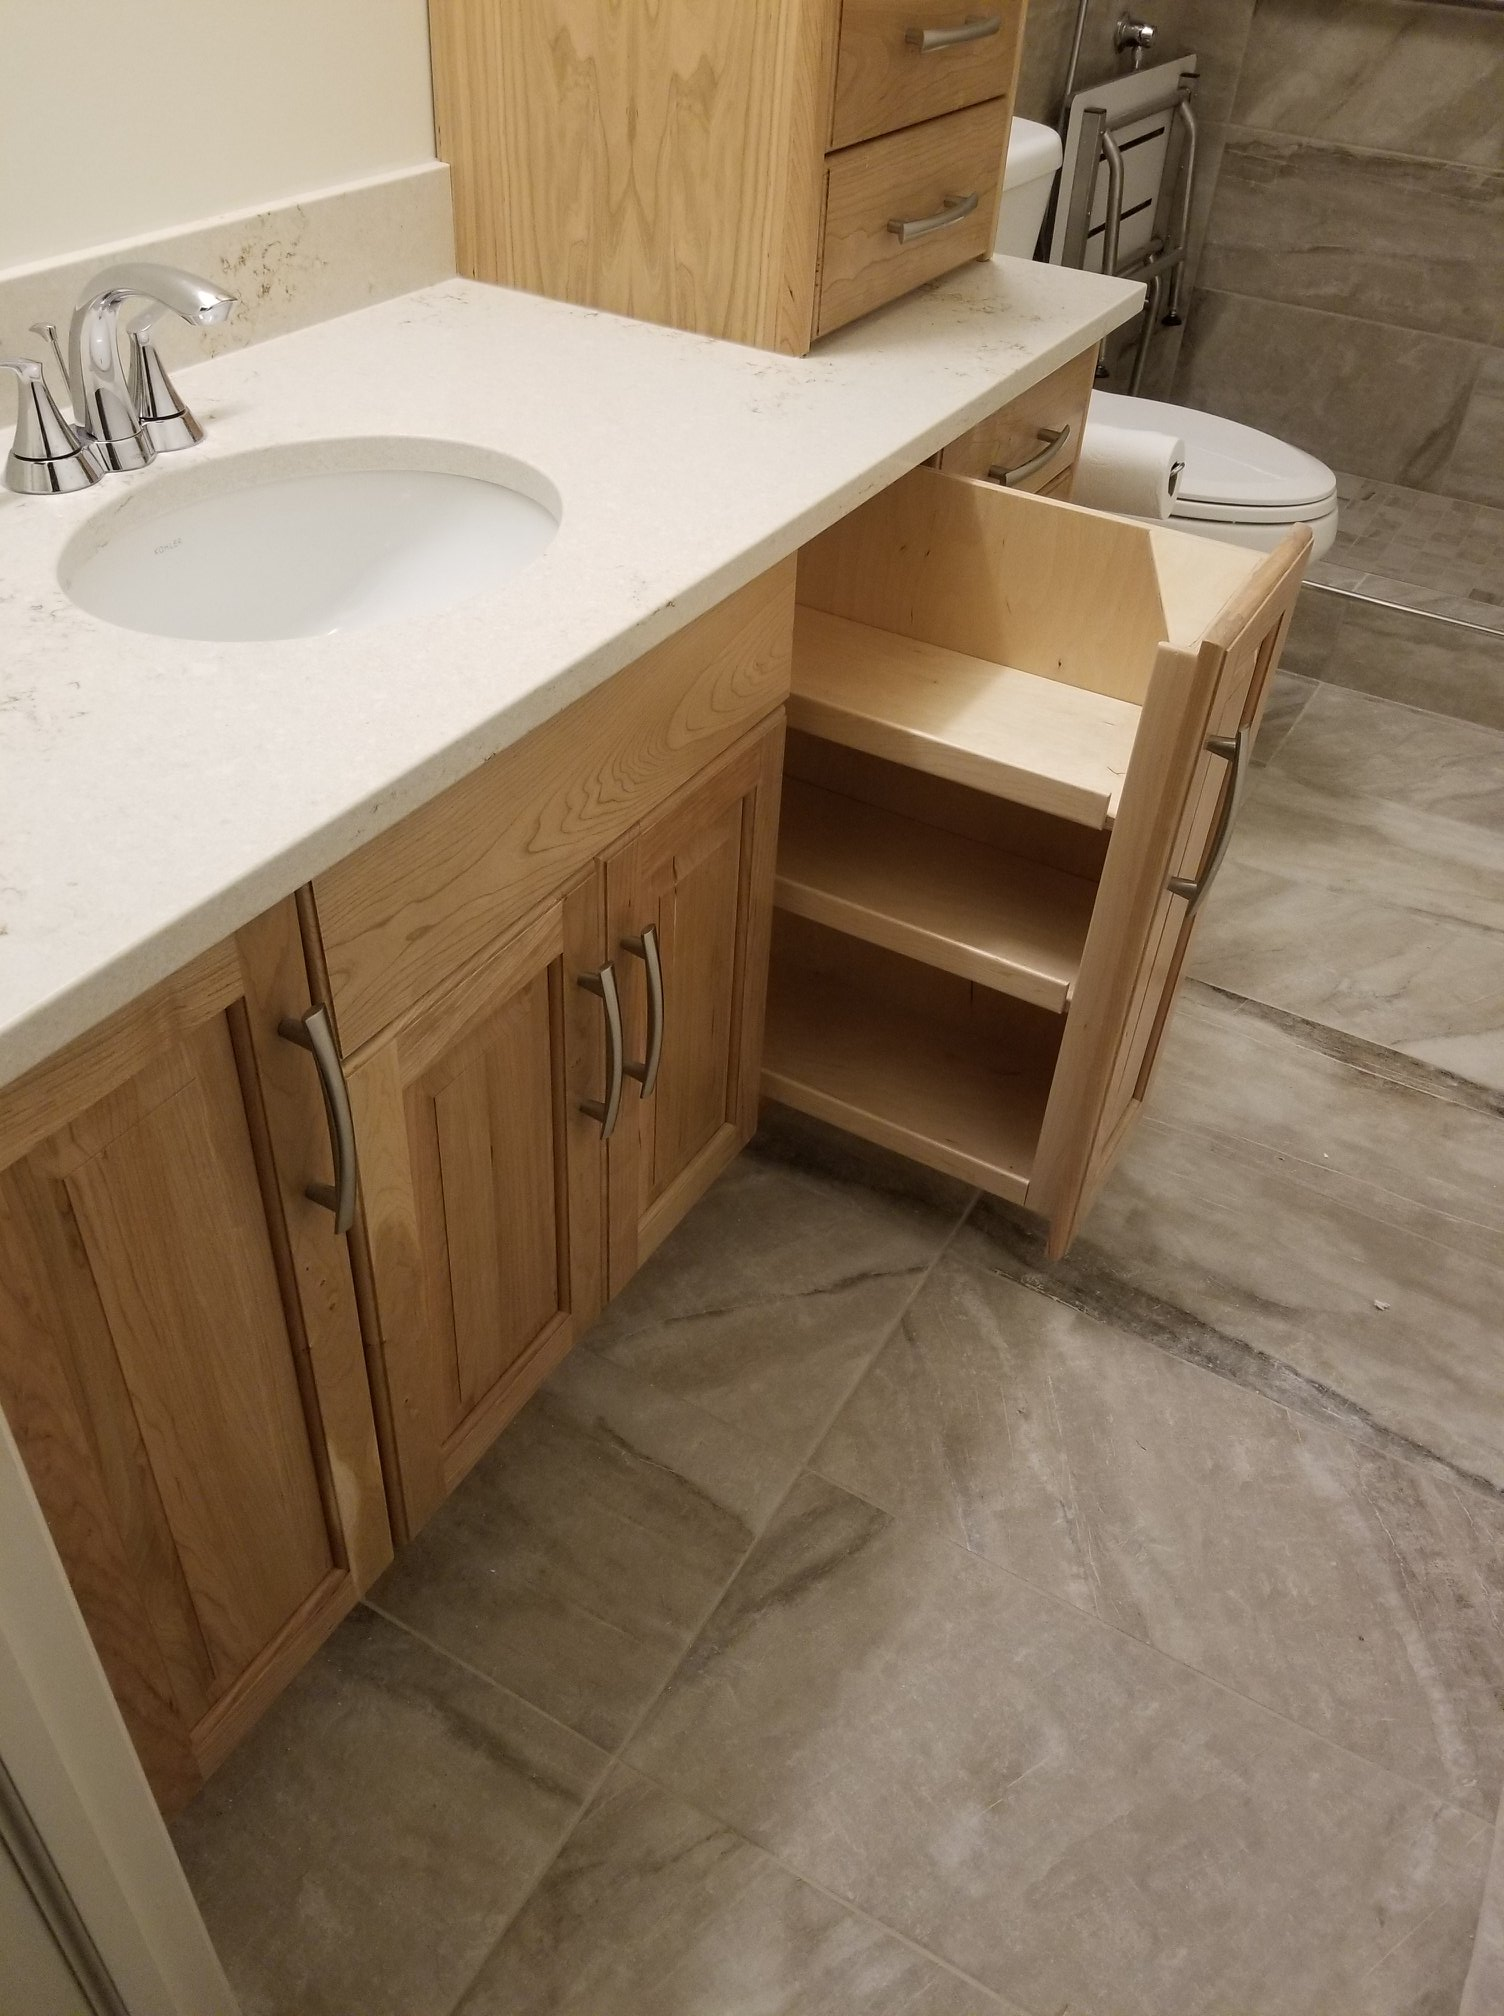 The vanity, with a clear cherry finish, has some really nice features, such as two put out shelf units. One of the complaints about the original vanity was the difficultly in reaching the items stored in the back. These pull out drawers solve that problem easily